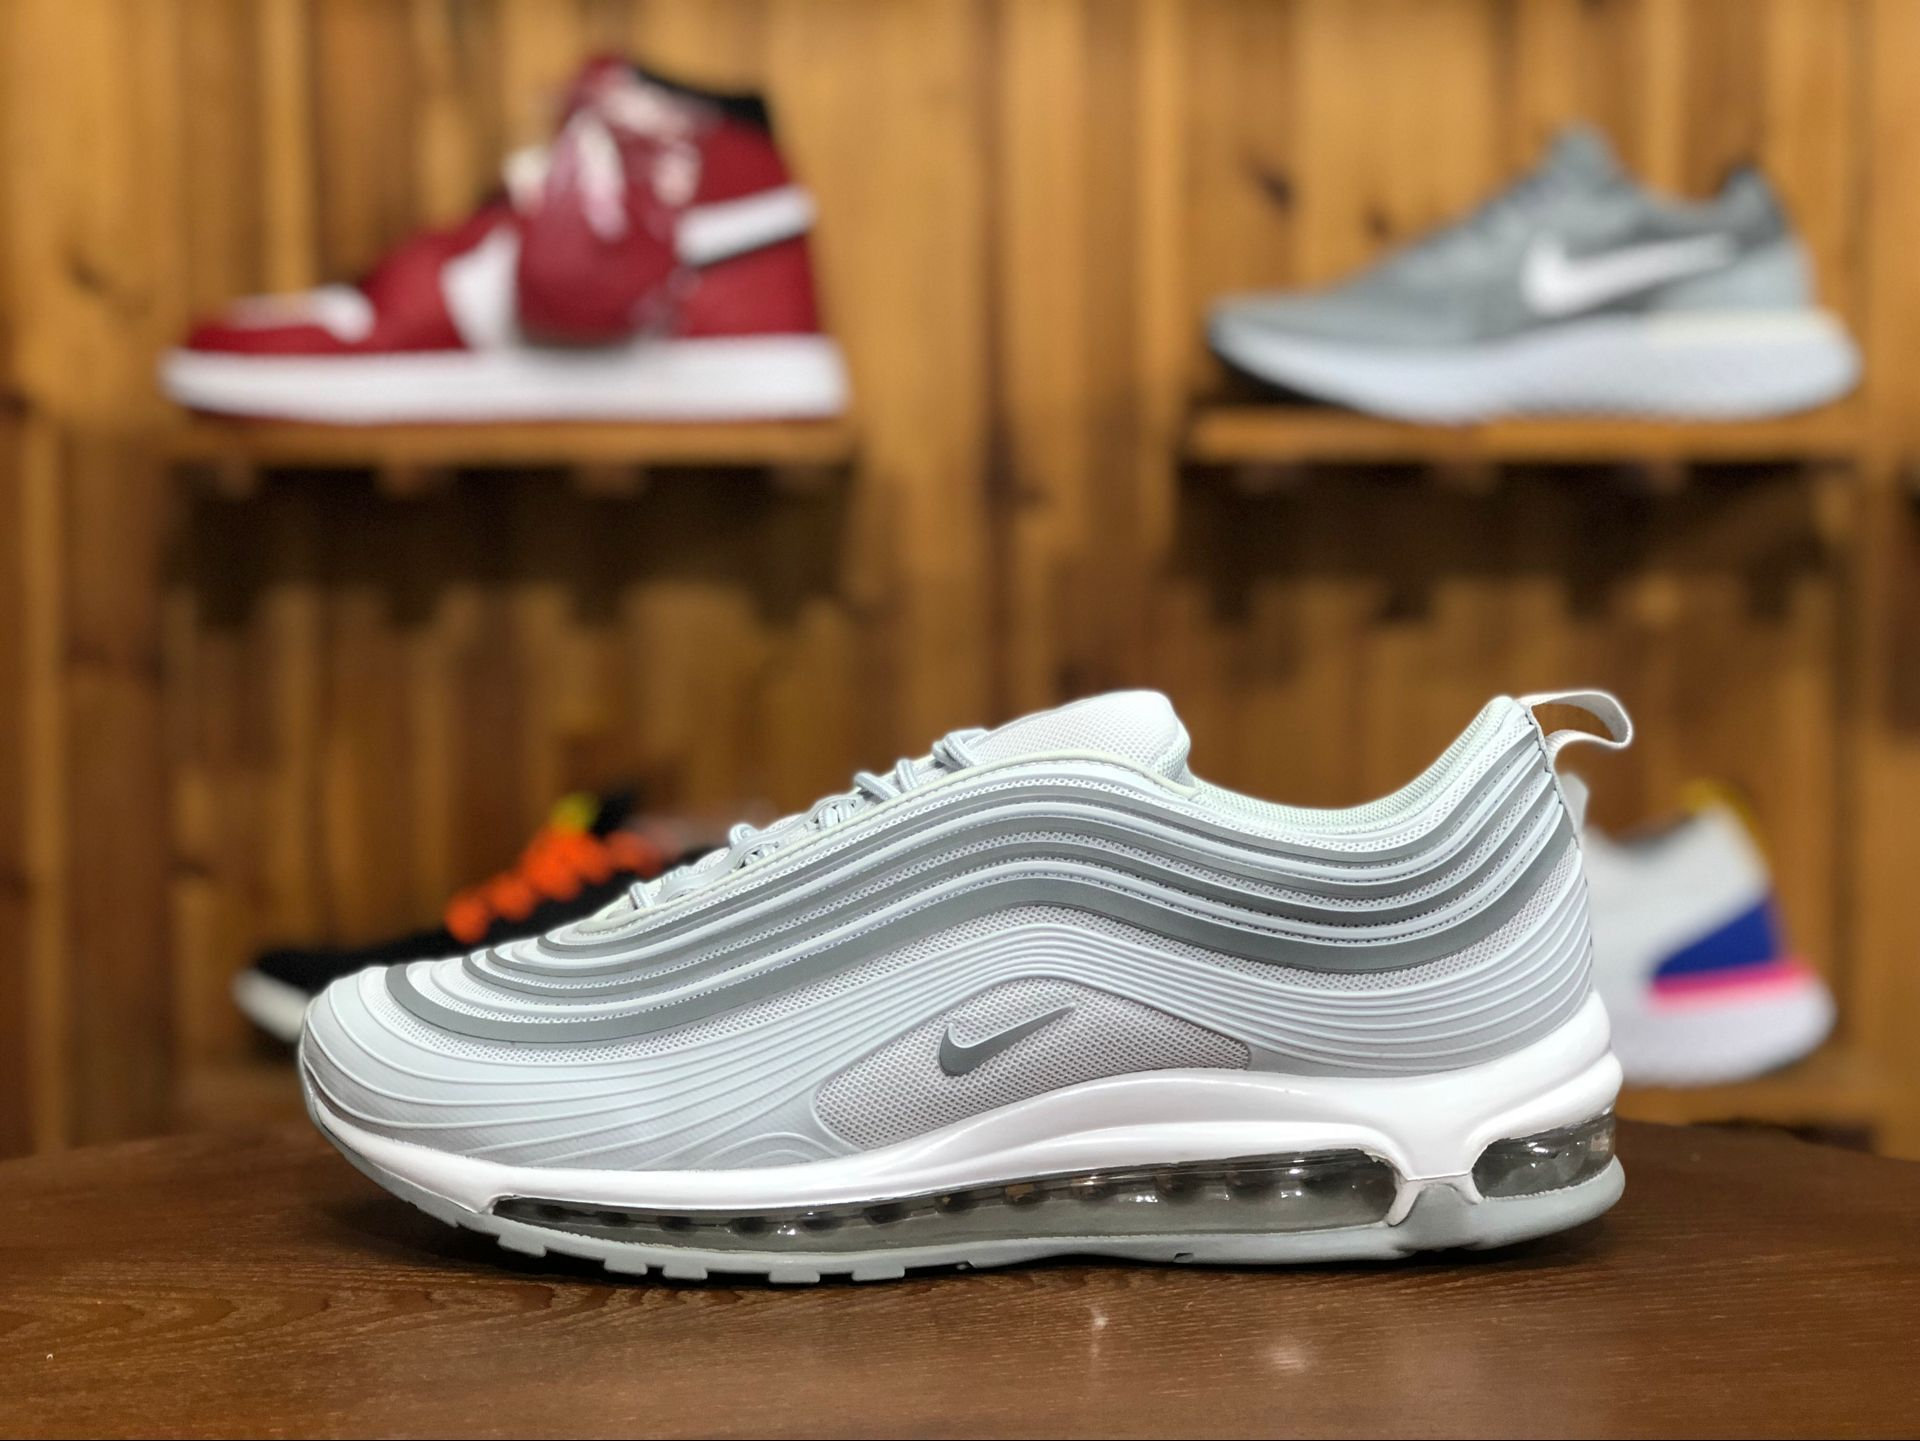 Nike Air Max 97 Ultra '17 Silver Iridescent On Sale